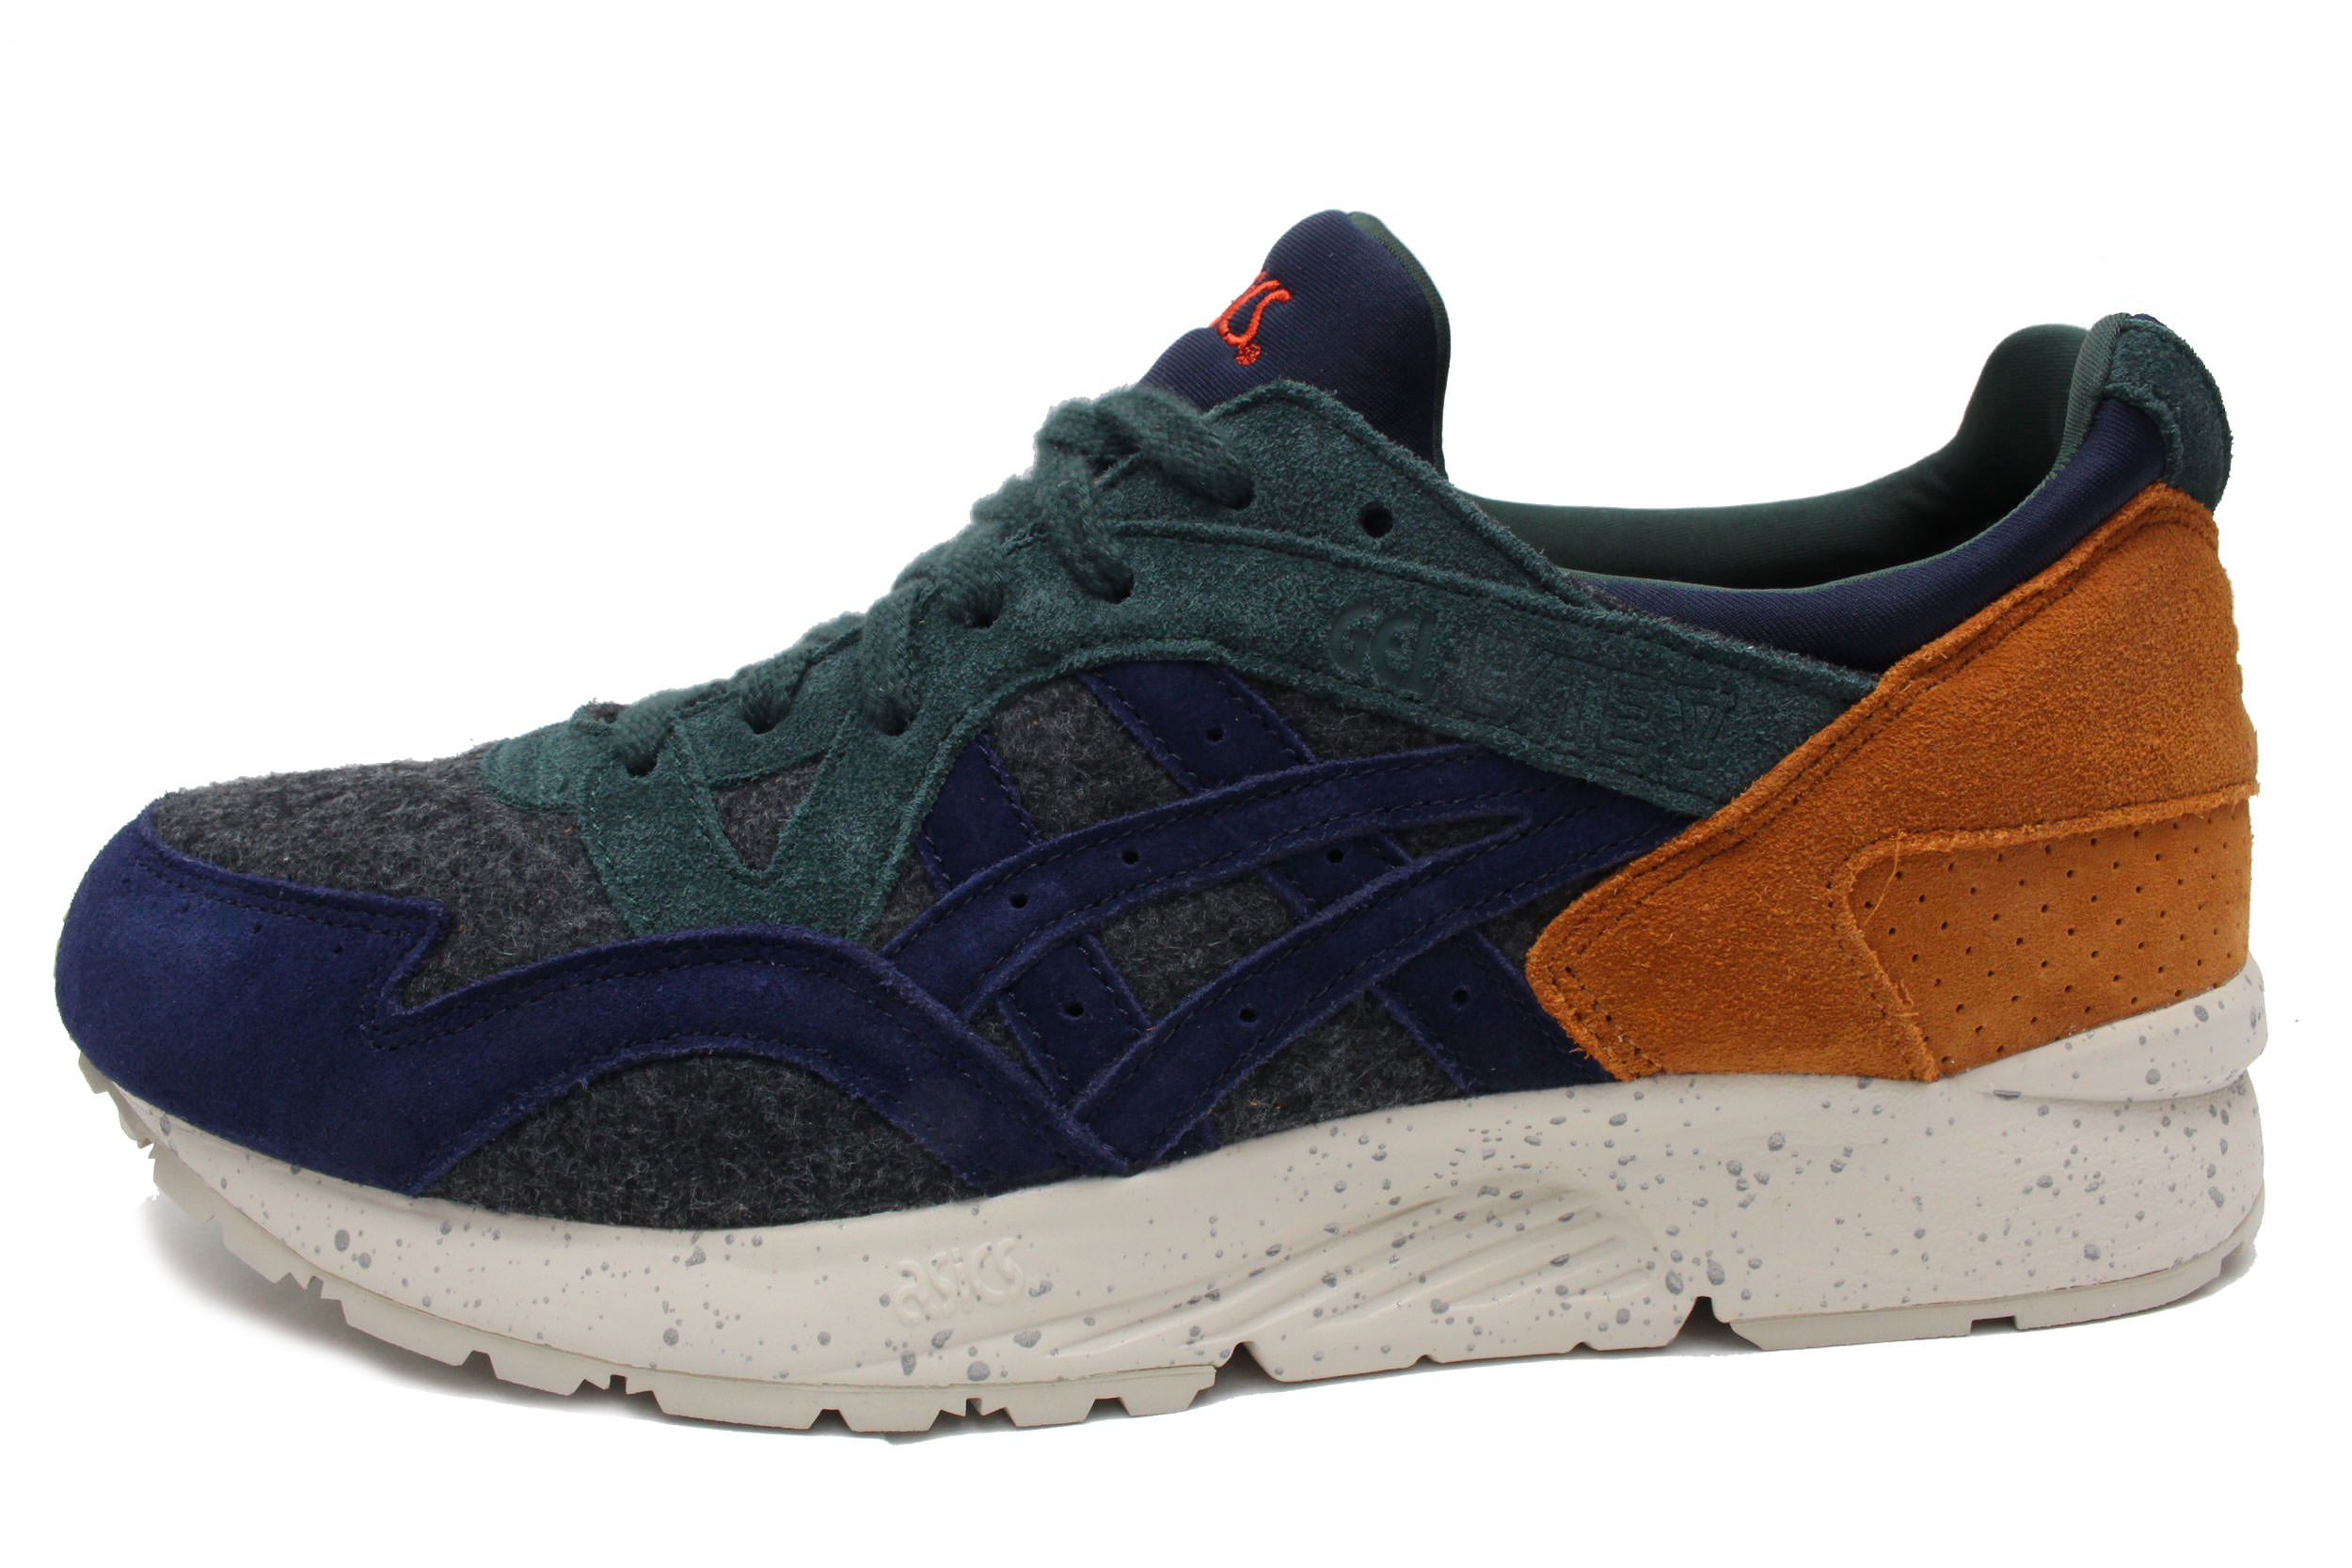 Asics Gel Lyte V Mens (Xmas Pack) In Dark Grey/Peacoat, 10.5